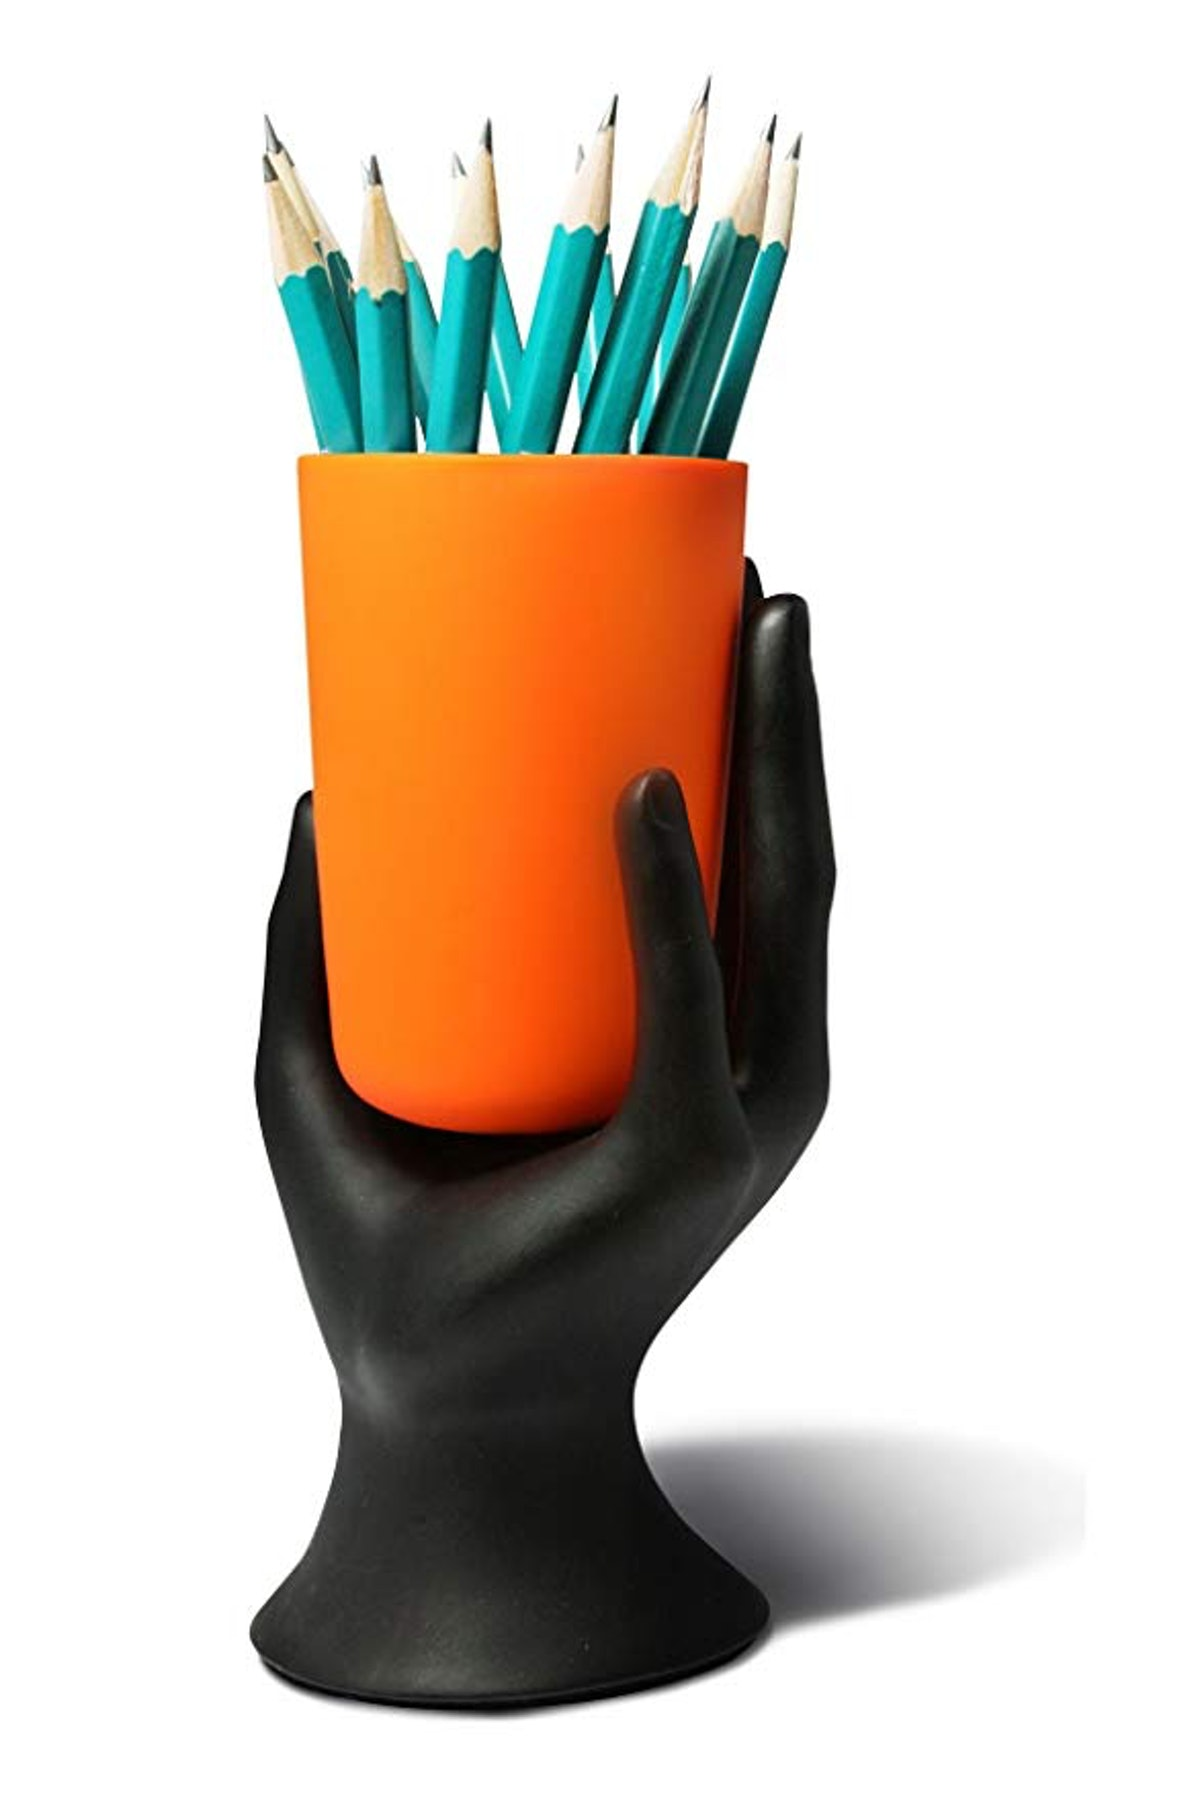 Hand Cup Pen/Pencil Holder by LilGift